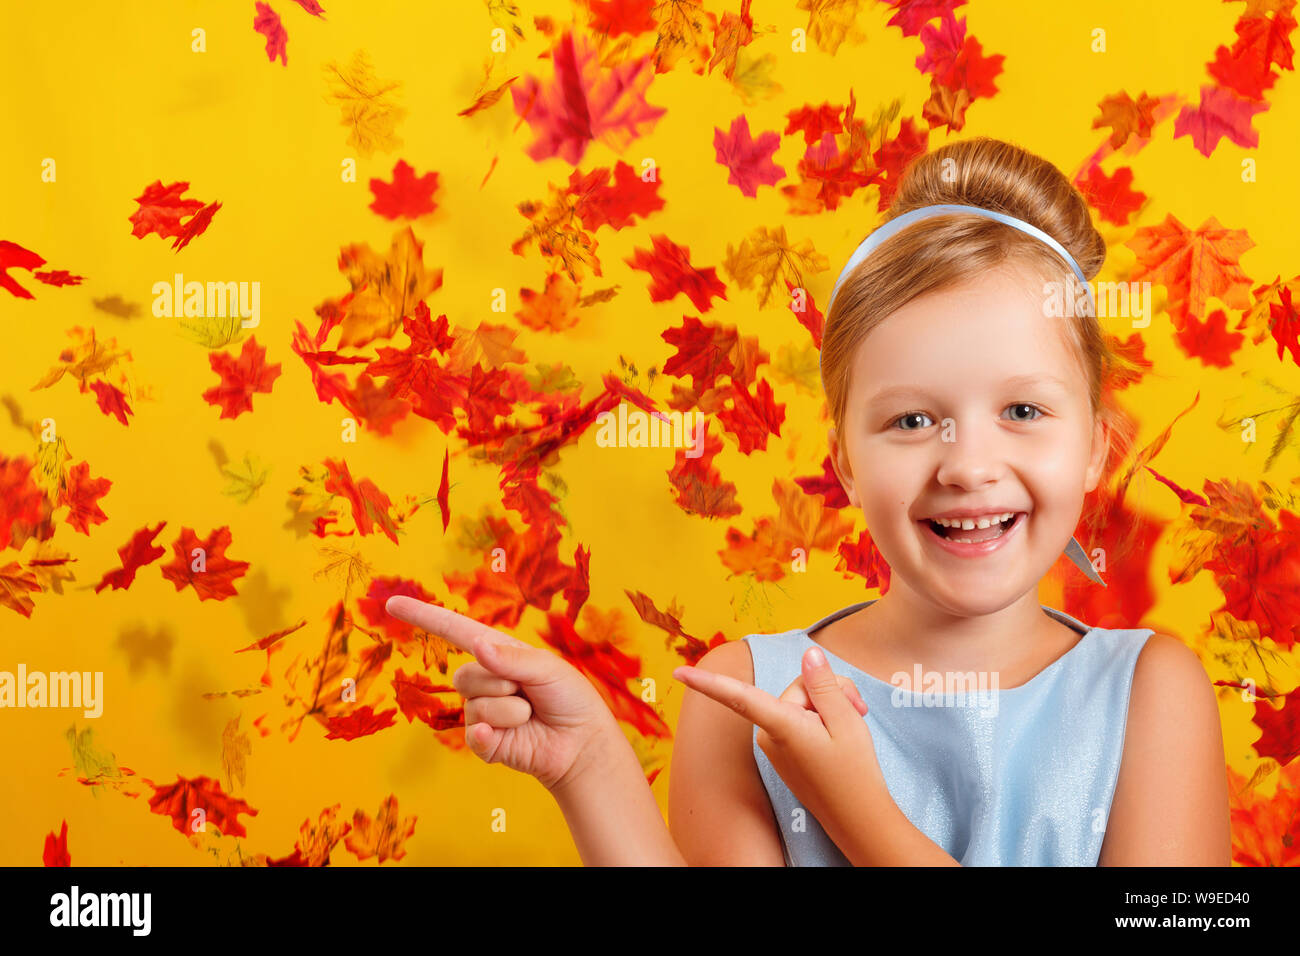 Cheerful little girl in a costume of Princess Cinderella on a background of falling autumn leaves. The child shows the index fingers to the side. Conc - Stock Photo